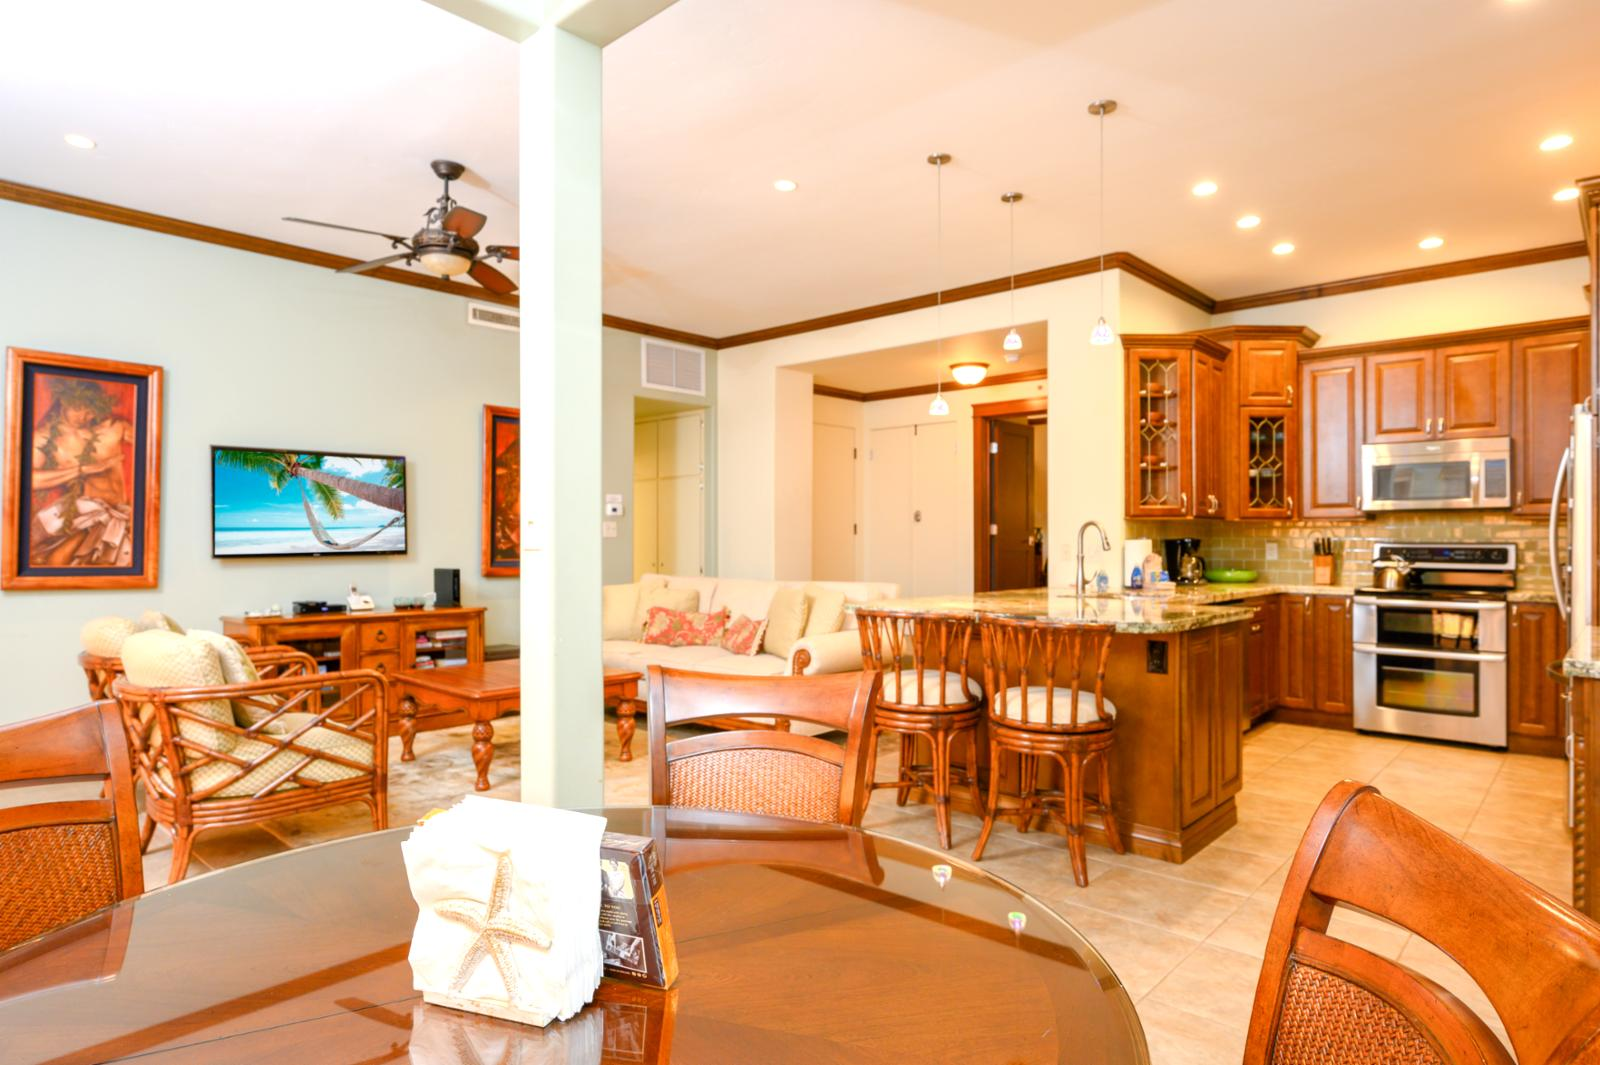 Kitchen with breakfast bar, seating for 2